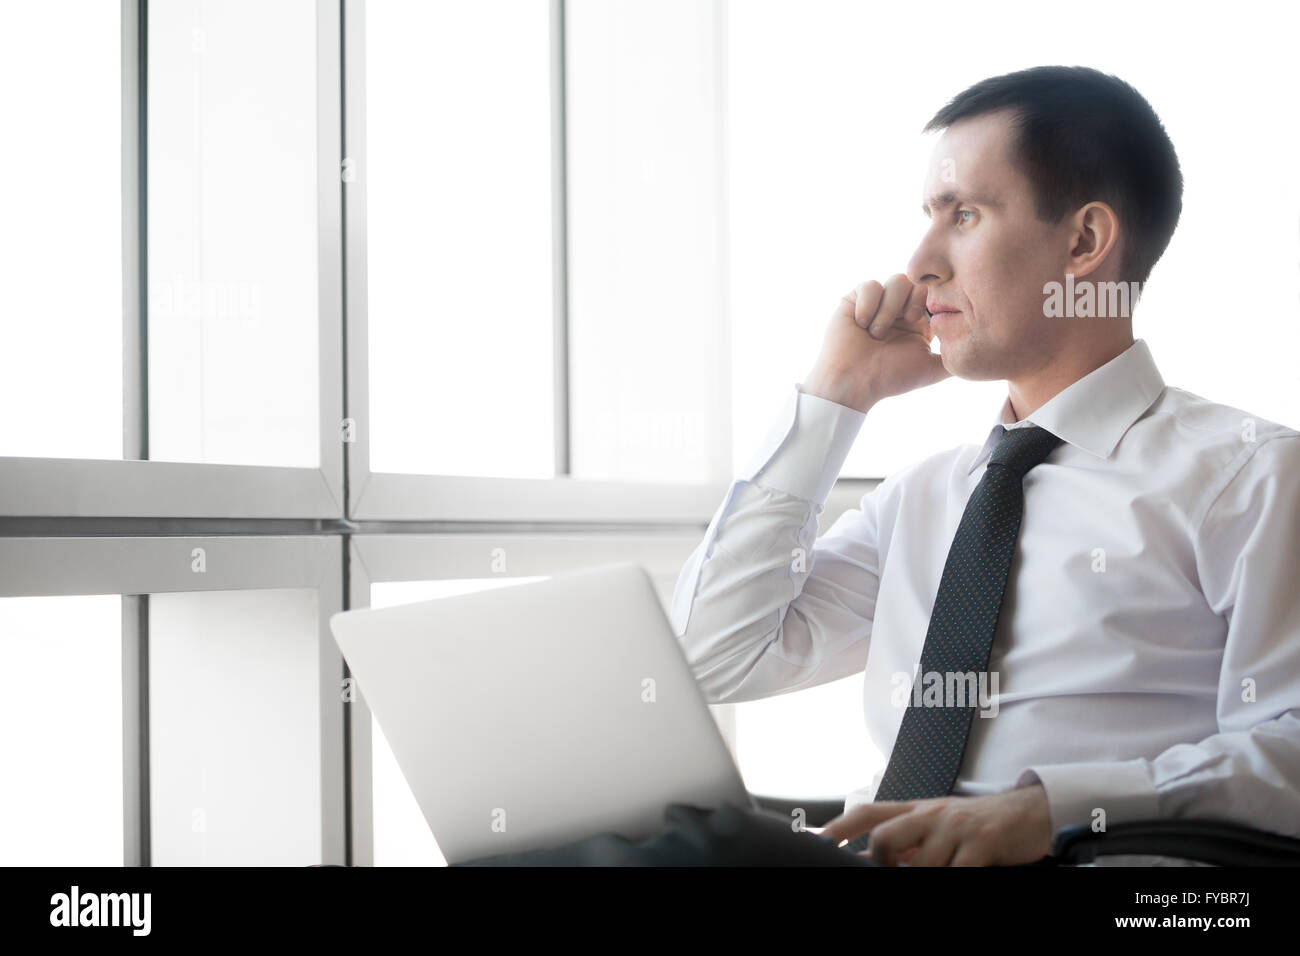 Portrait of serious handsome young business man working on laptop computer and making call. Caucasian businessperson - Stock Image